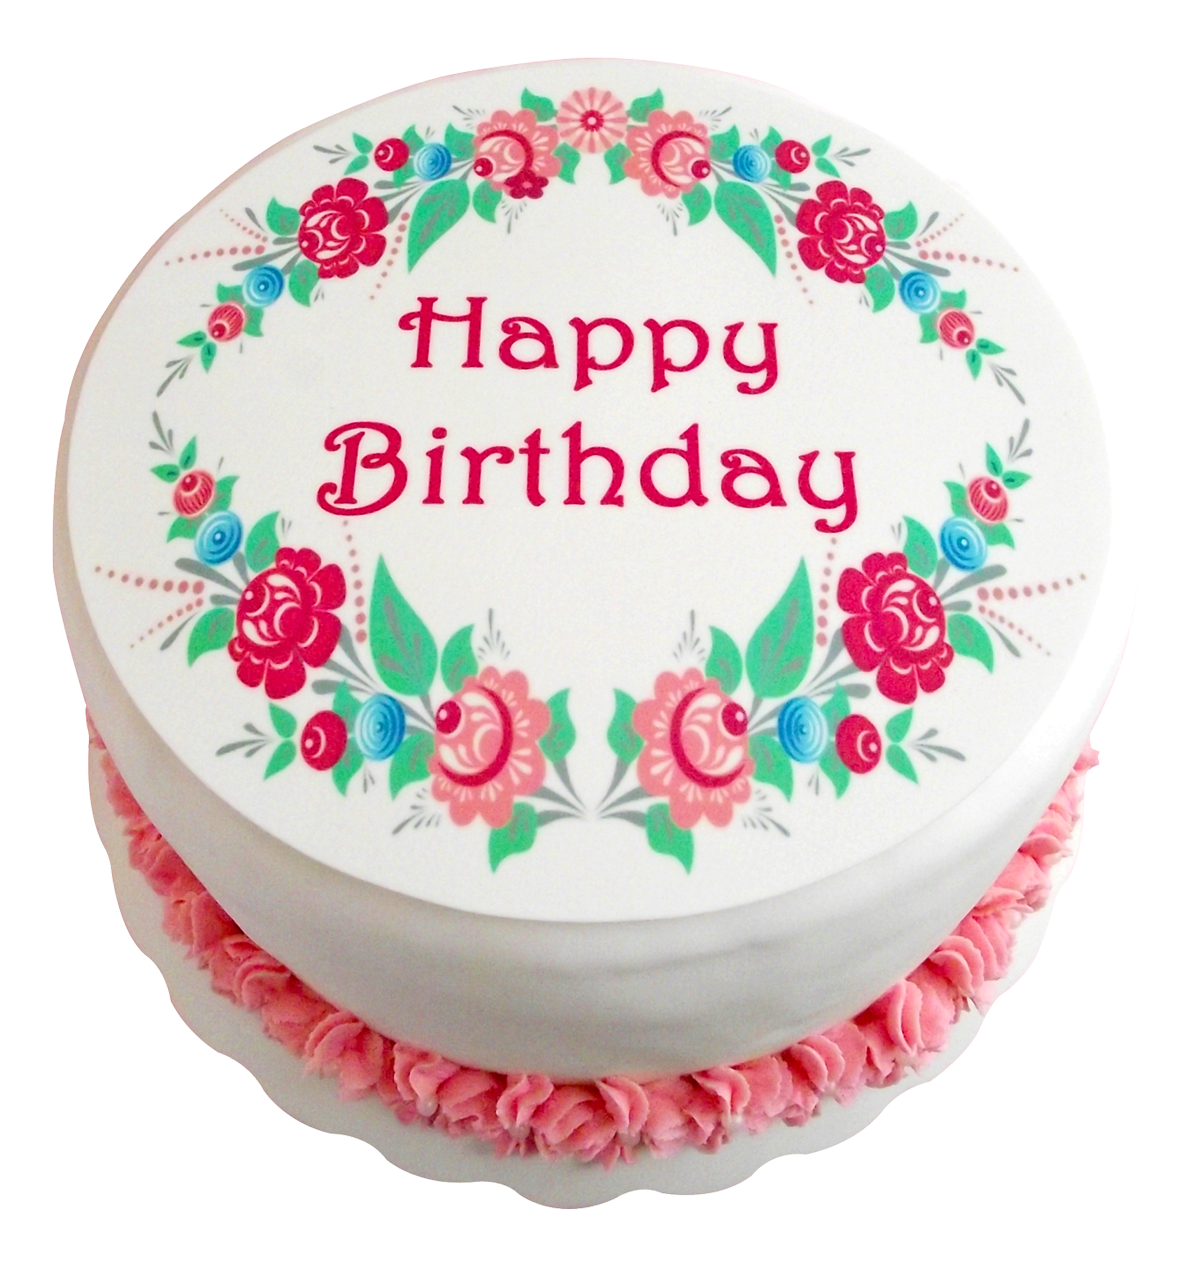 Transparent_Birthday-Cake-PNG